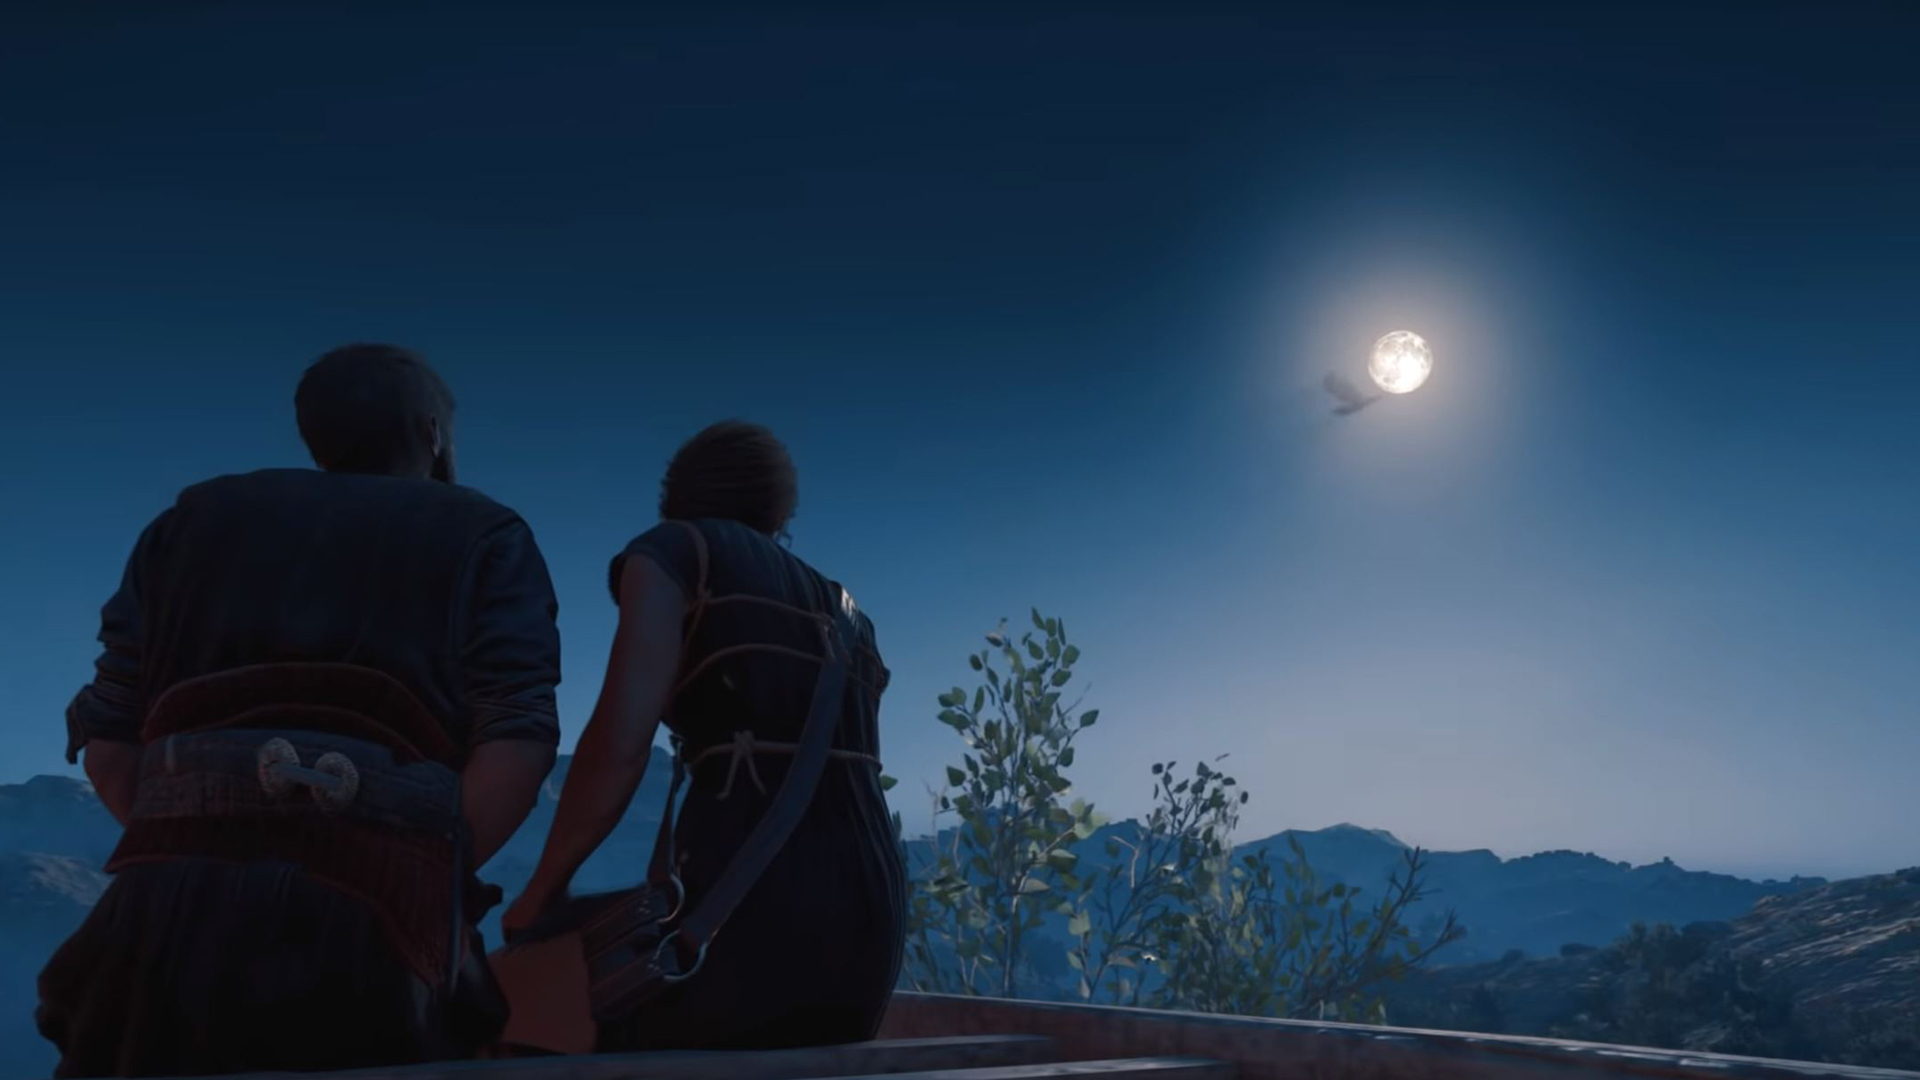 Assassin's Creed Odyssey's latest DLC forces your hero into